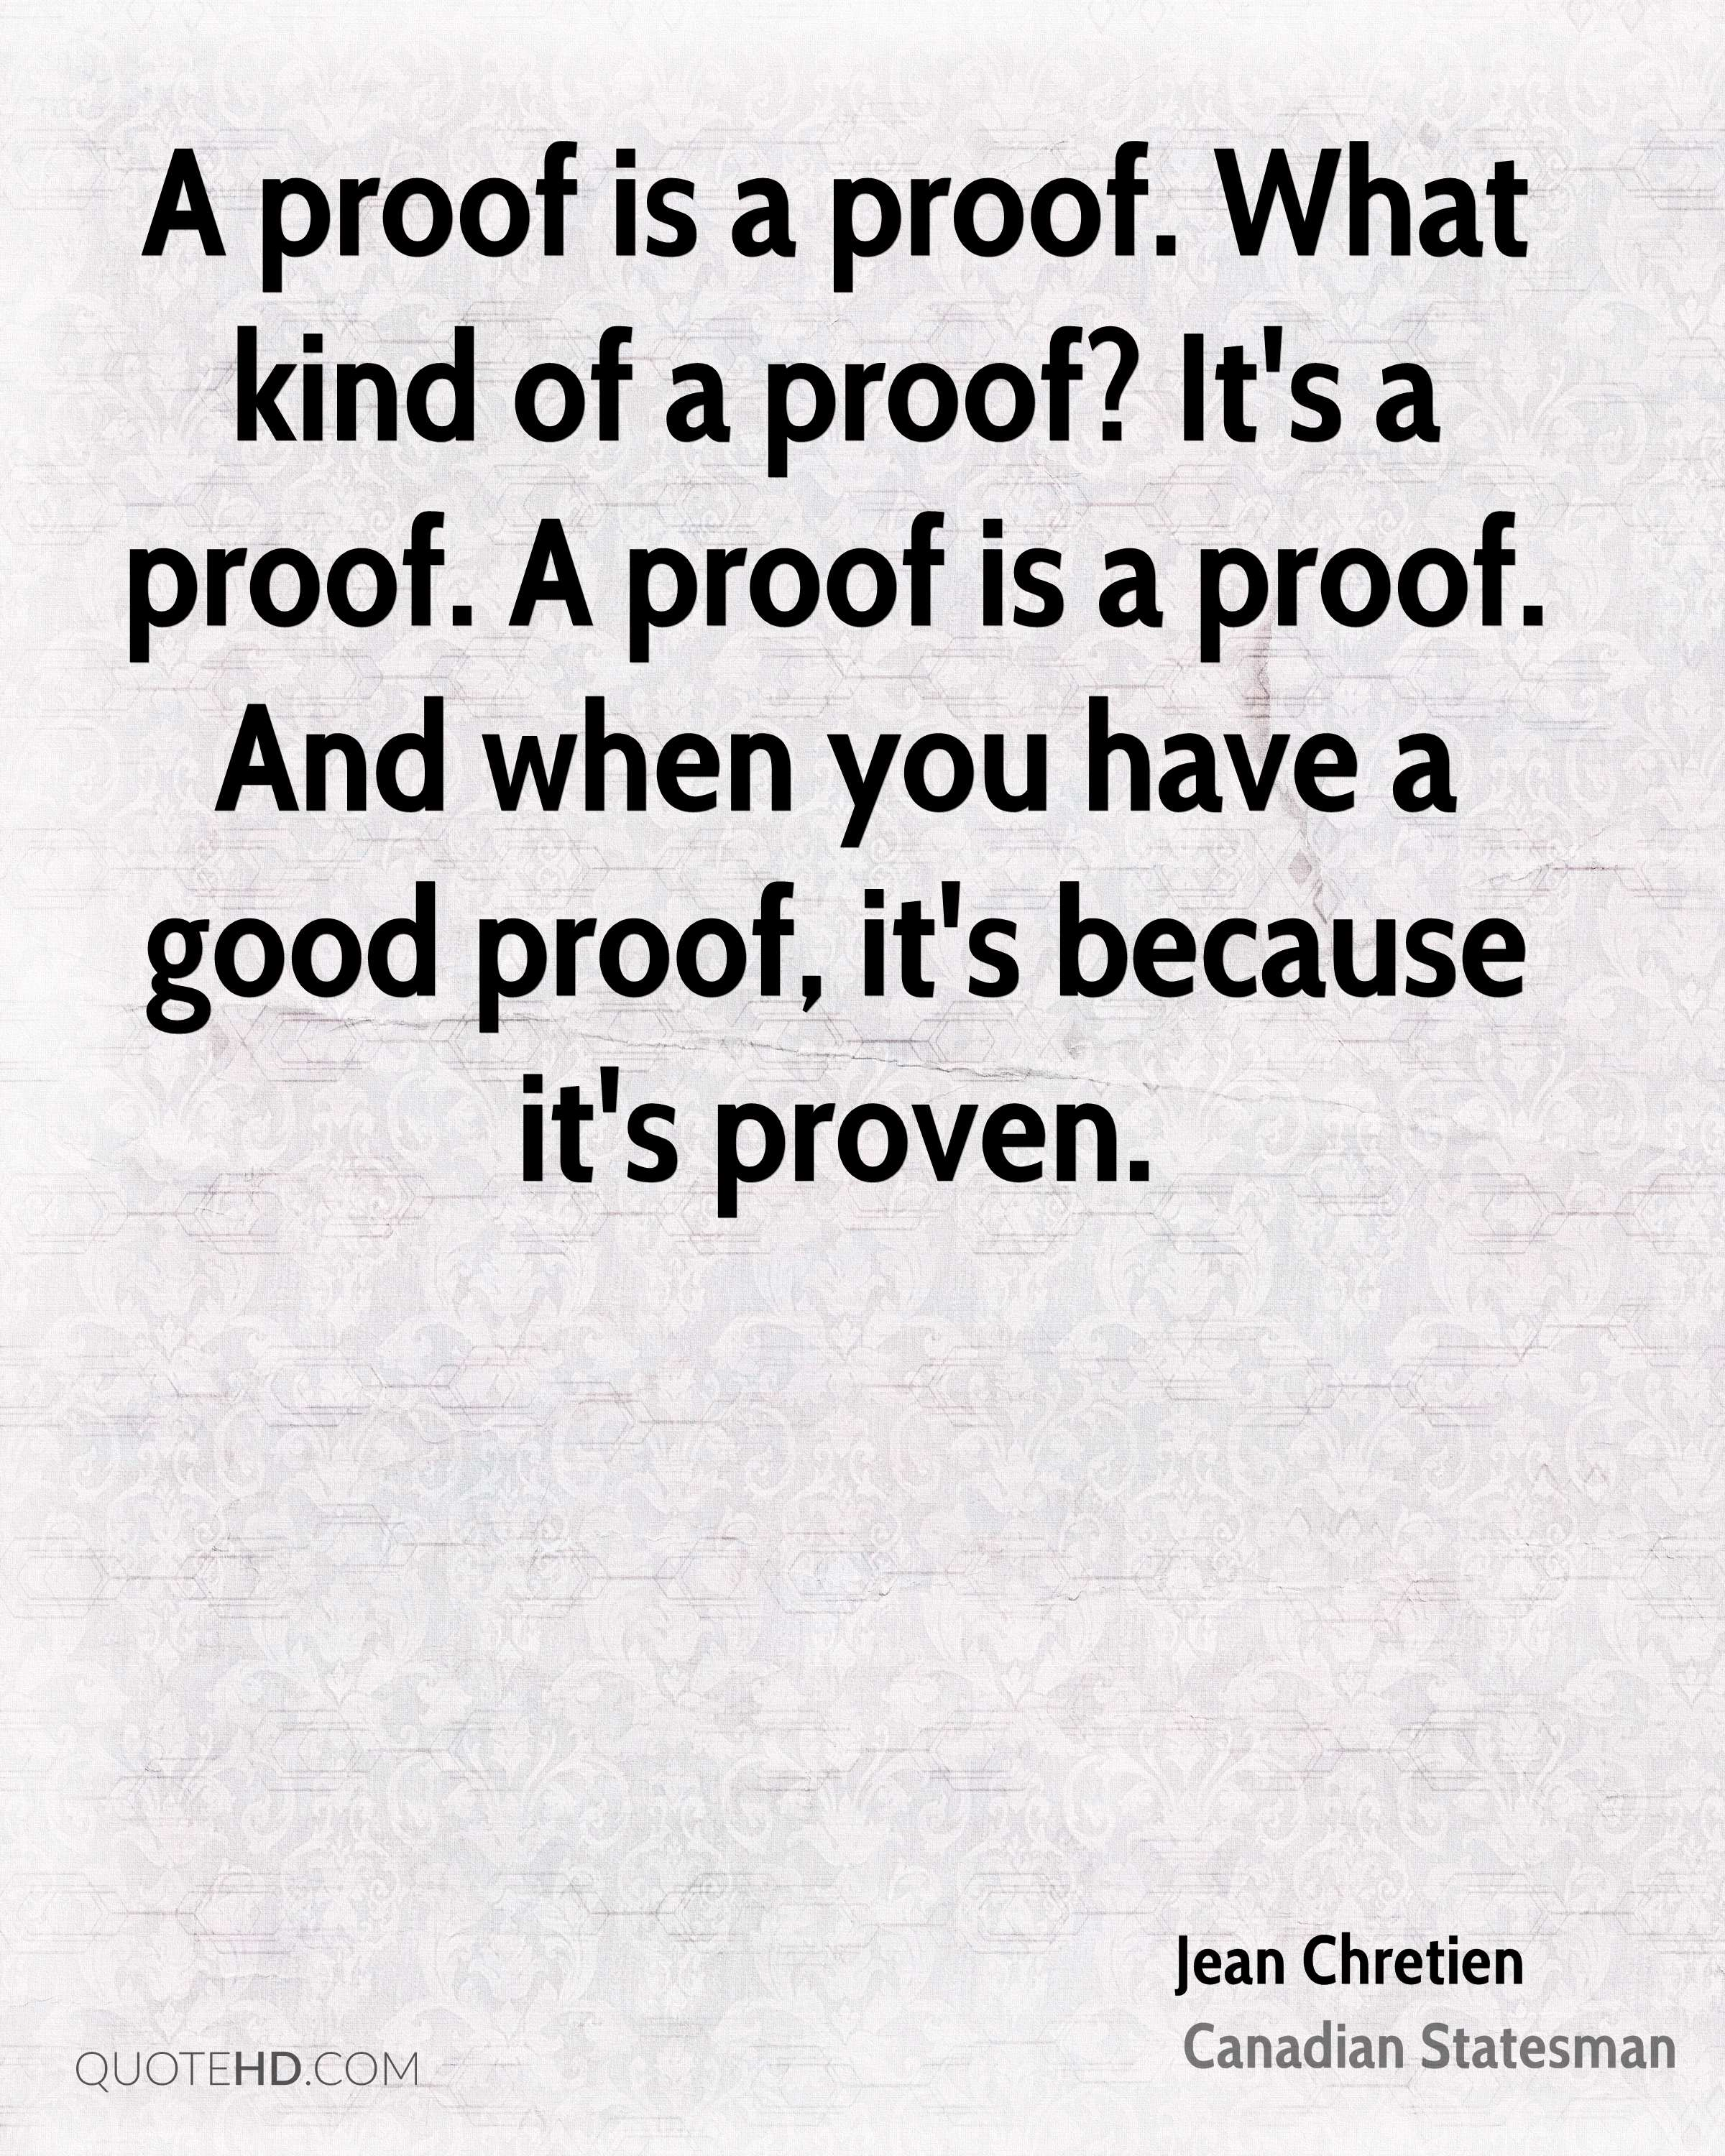 A proof is a proof. What kind of a proof? It's a proof. A proof is a proof. And when you have a good proof, it's because it's proven.